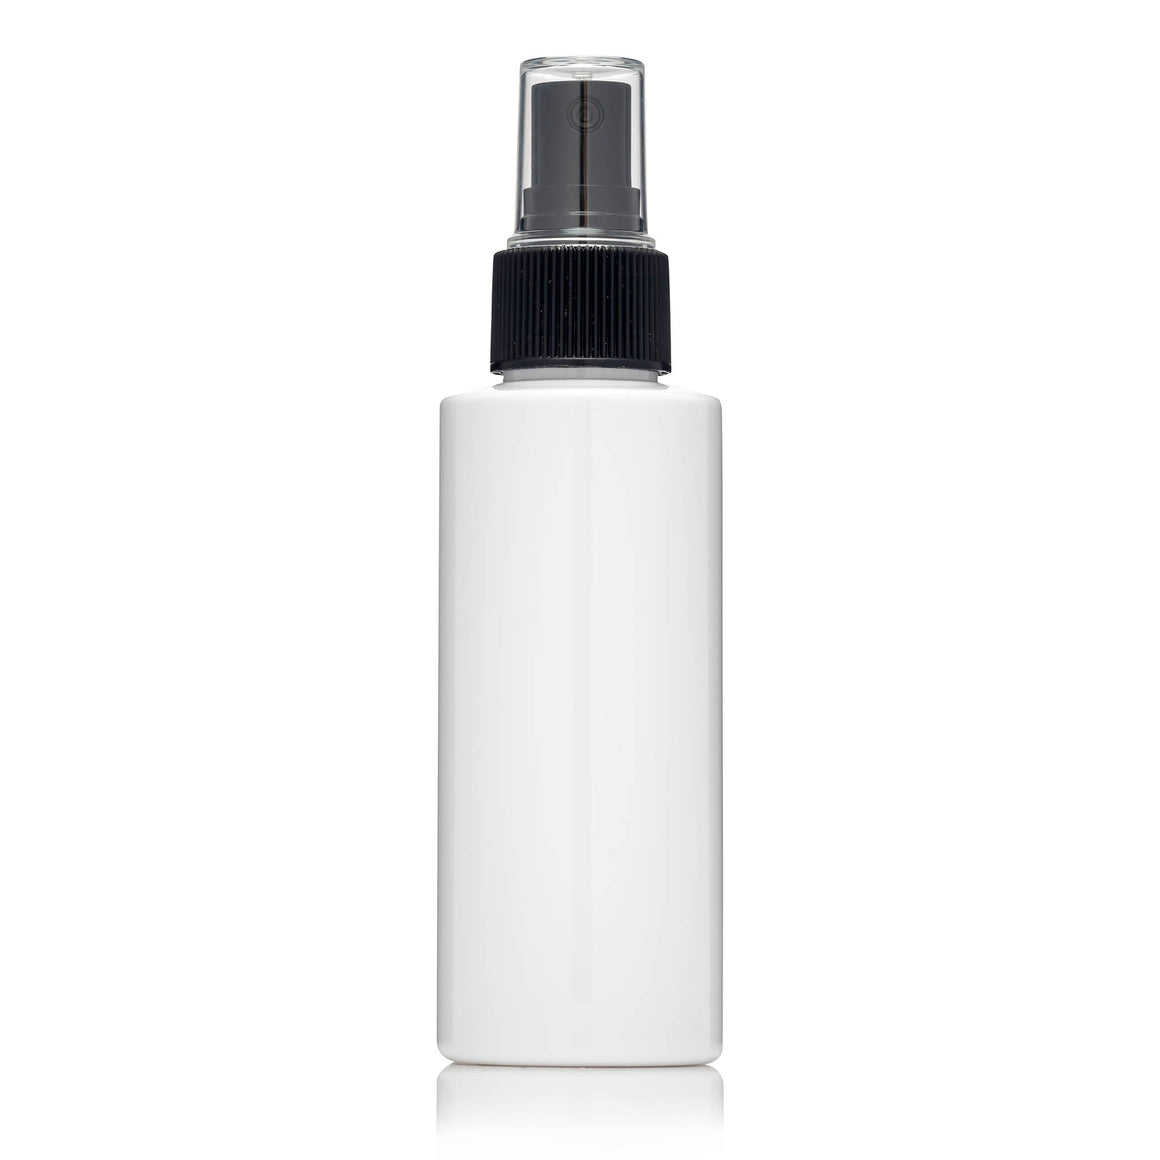 Botanical Toning Mist - 125ml Classic